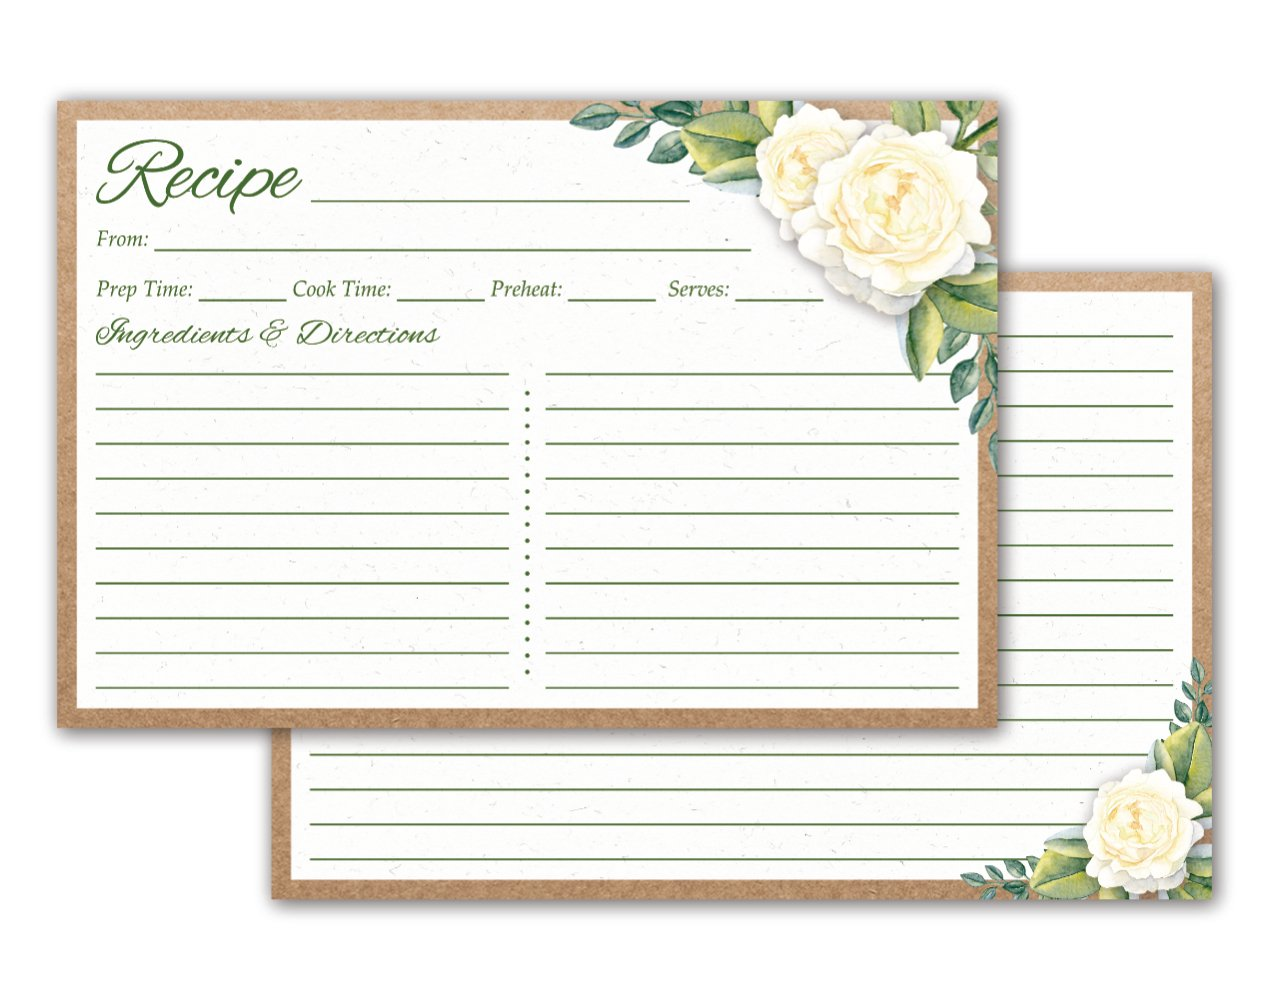 Floral Recipe Cards 4x6-50 Double Sided Rustic Recipe Cards for Wedding (White Floral) - Thick Cardstock, Made in the USA